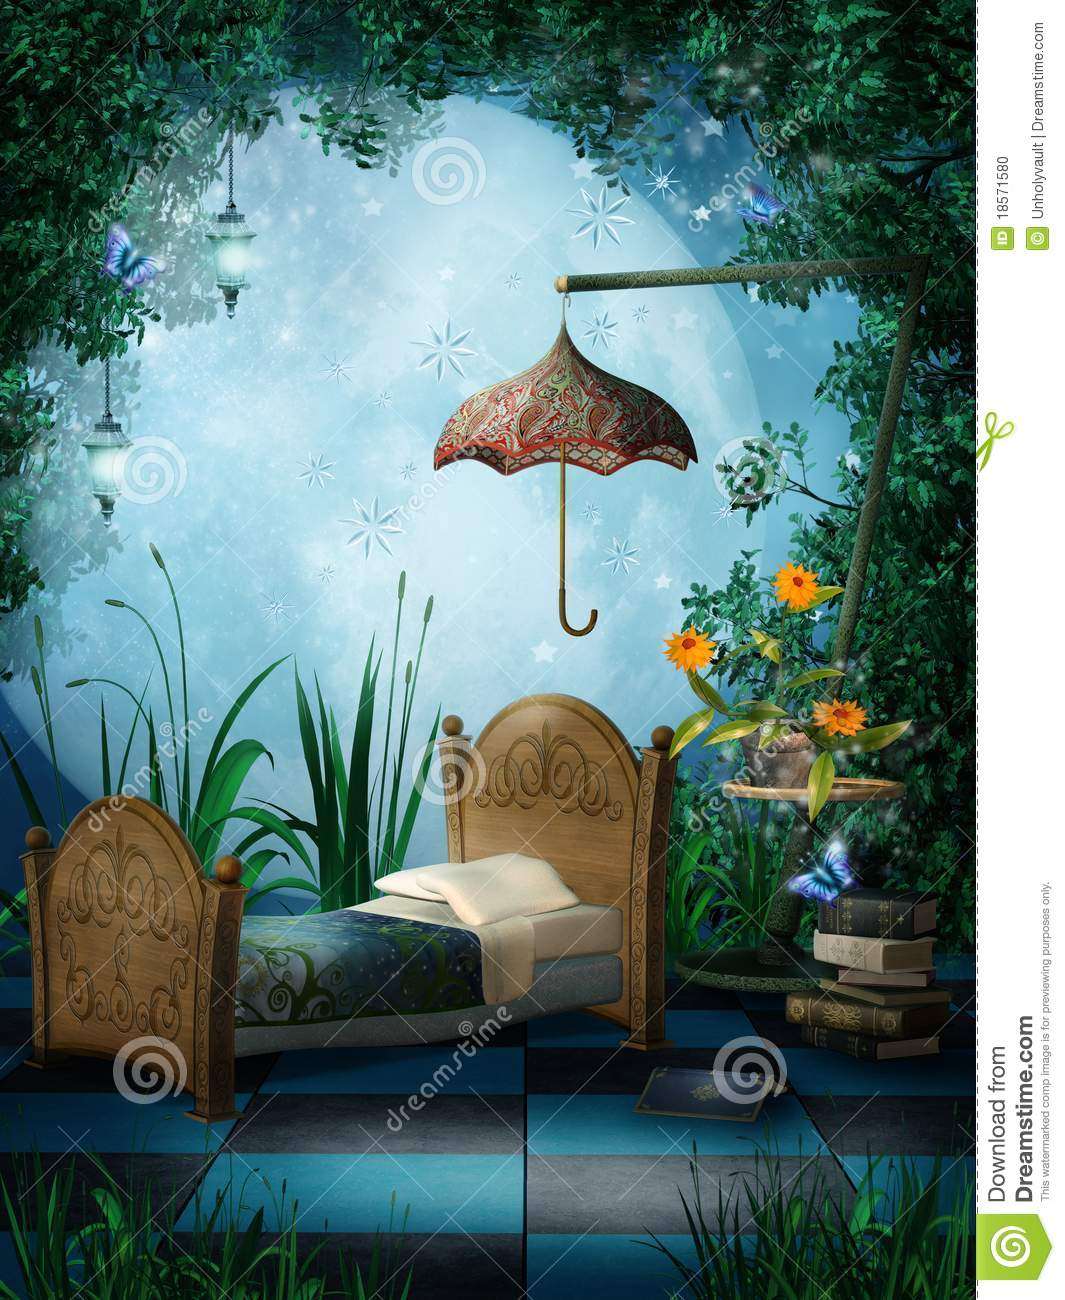 fantasy bedroom with lamps stock photo image 18571580 fantasy bedroom submited images